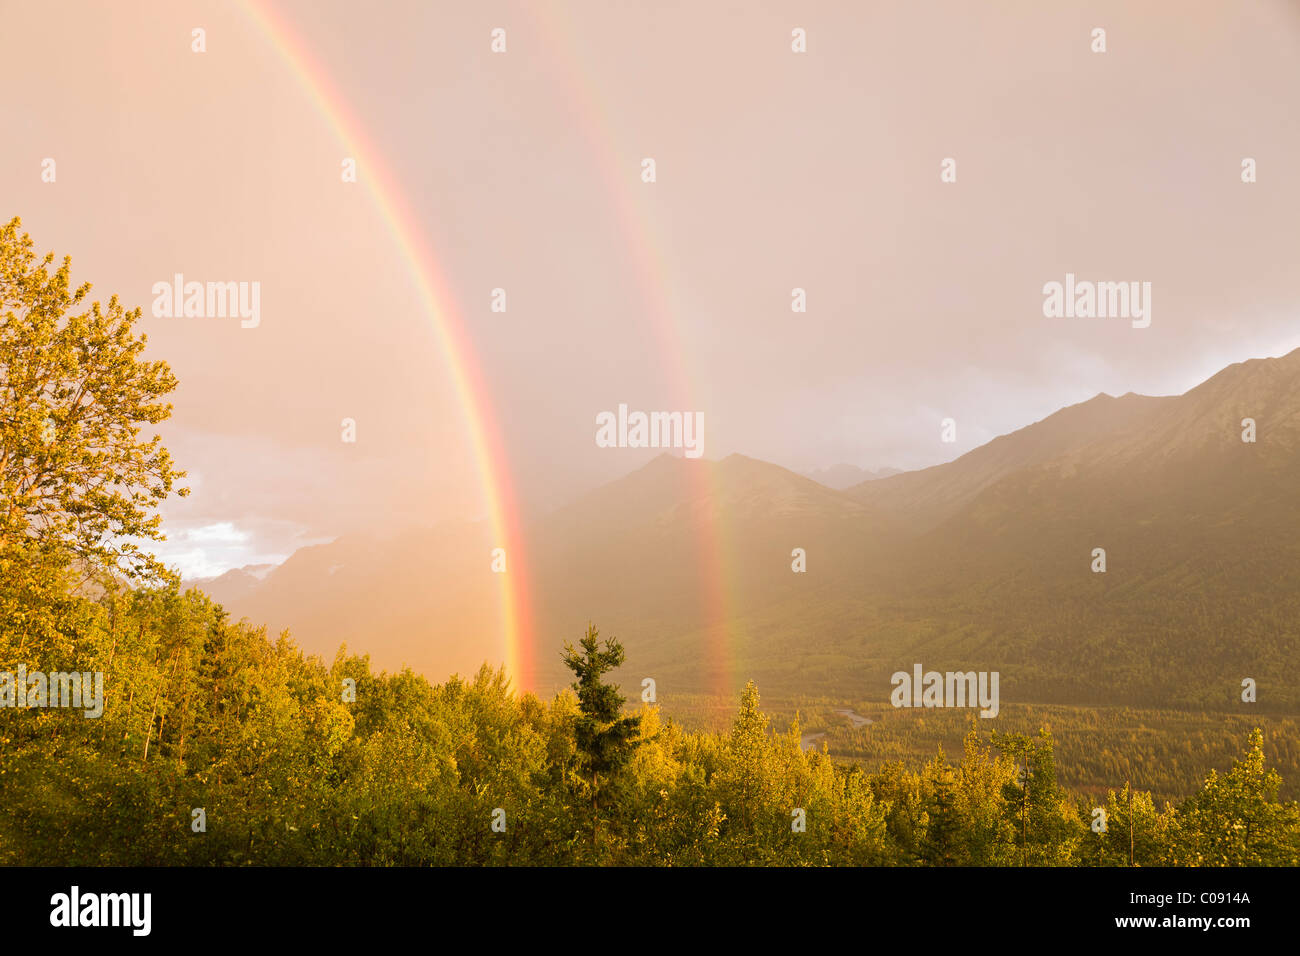 Sunset view of a double rainbow arching over Eagle River Valley after a passing storm, Southcentral Alaska, Summer - Stock Image